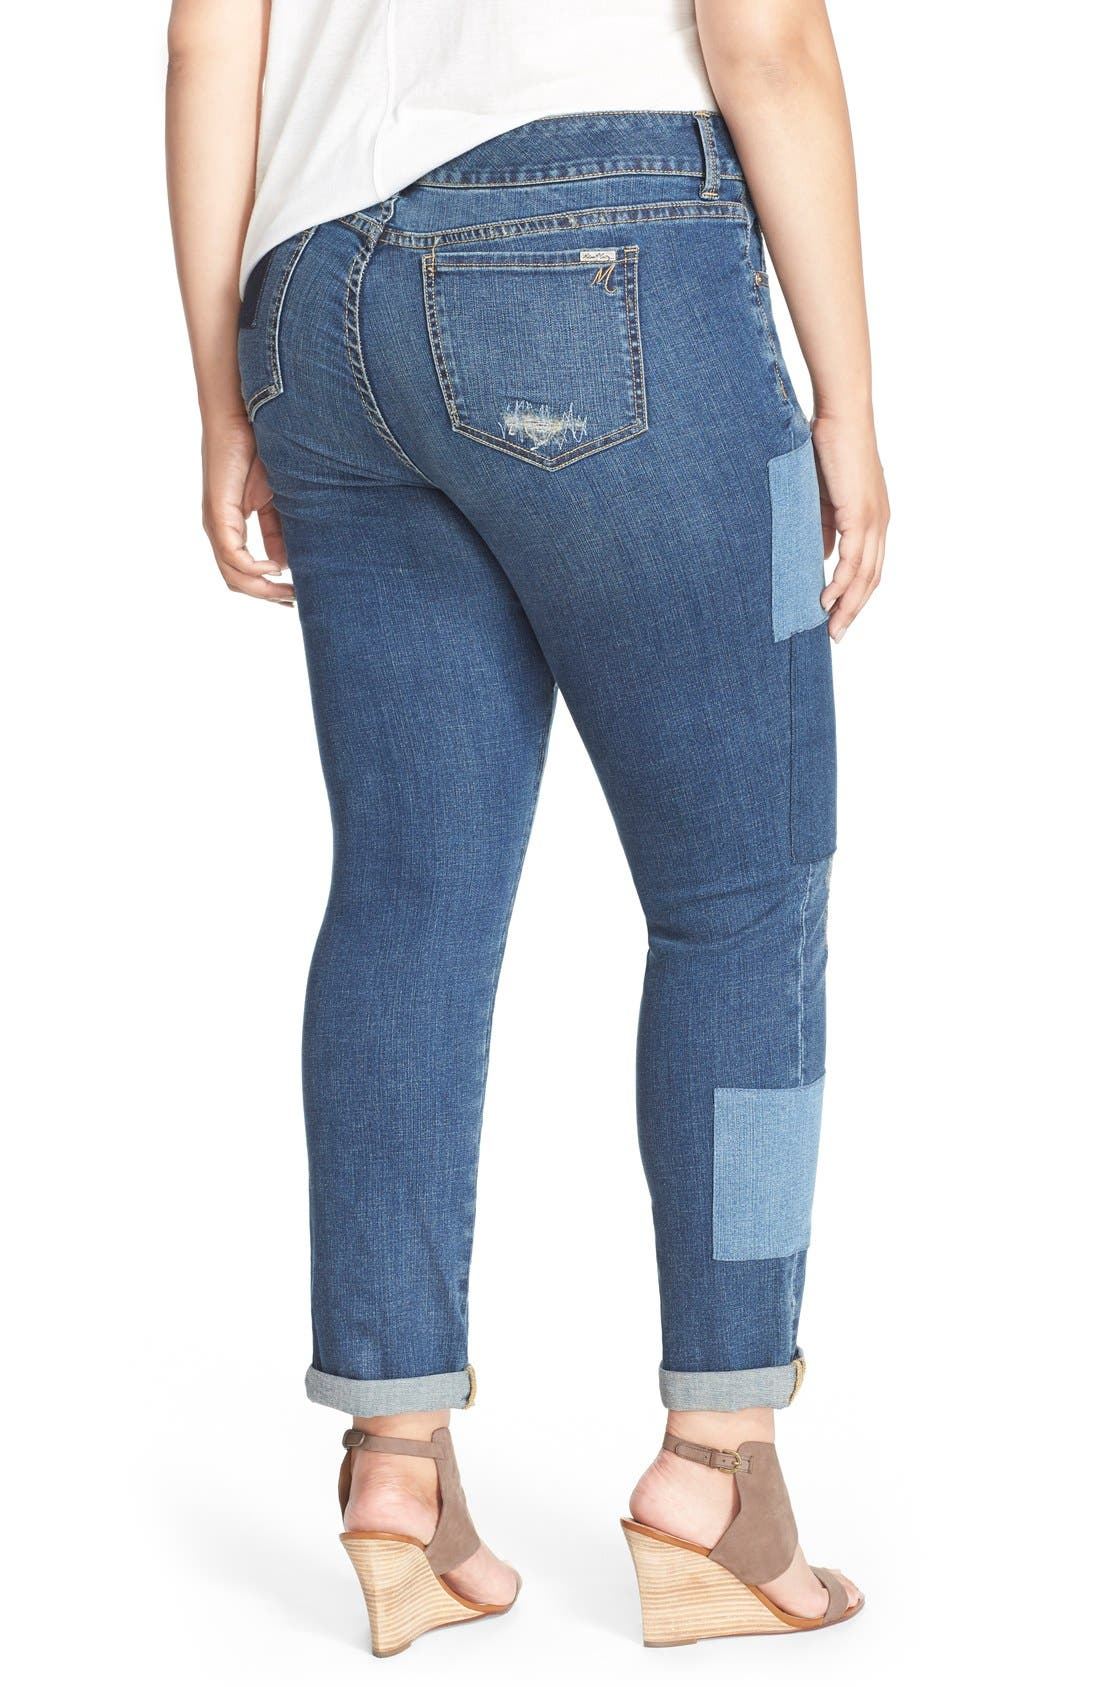 Alternate Image 2  - Melissa McCarthy Seven7 Patch Detail Roll Cuff Girlfriend Jeans (Plus Size)